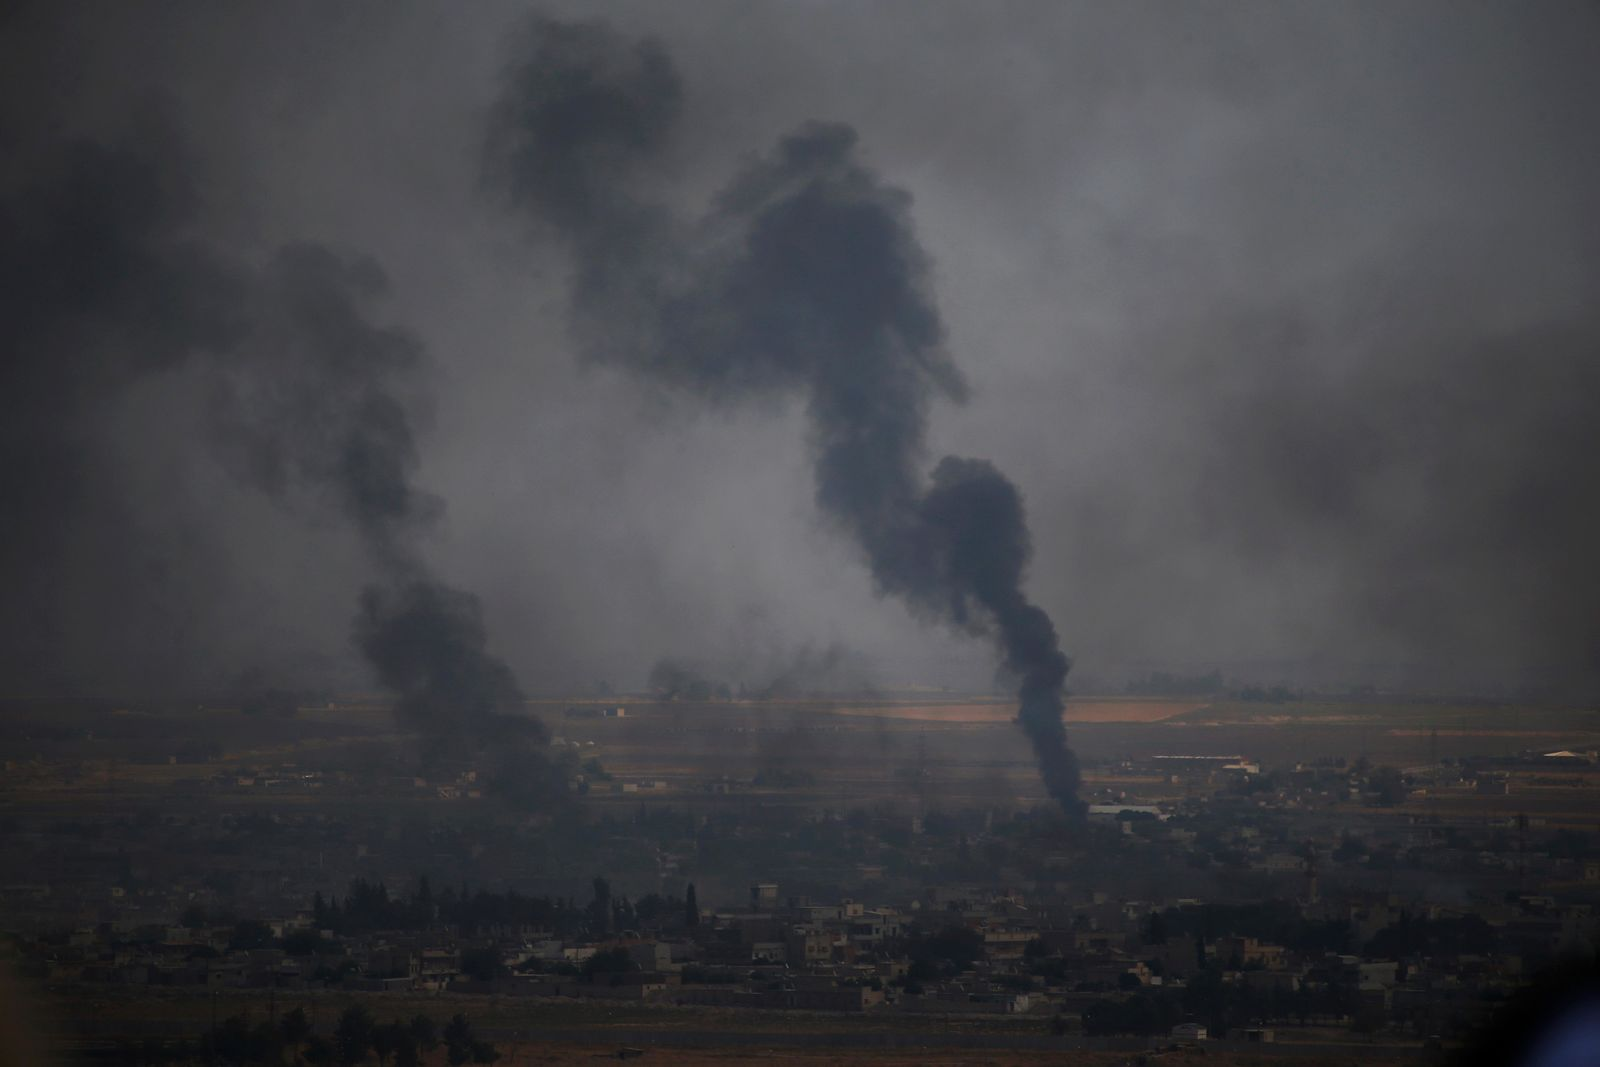 In this photo taken from the Turkish side of the border between Turkey and Syria, in Ceylanpinar, Sanliurfa province, southeastern Turkey, smoke billows from targets in Ras al-Ayn, Syria, during bombardment by Turkish forces, Wednesday, Oct. 16, 2019. Turkey's President Recep Tayyip Erdogan called Wednesday on Syrian Kurdish fighters to leave a designated border area in northeast Syria 'as of tonight' for Turkey to stop its military offensive, defying pressure on him to call a ceasefire and halt its incursion into Syria, now into its eighth day. (AP Photo/Lefteris Pitarakis)